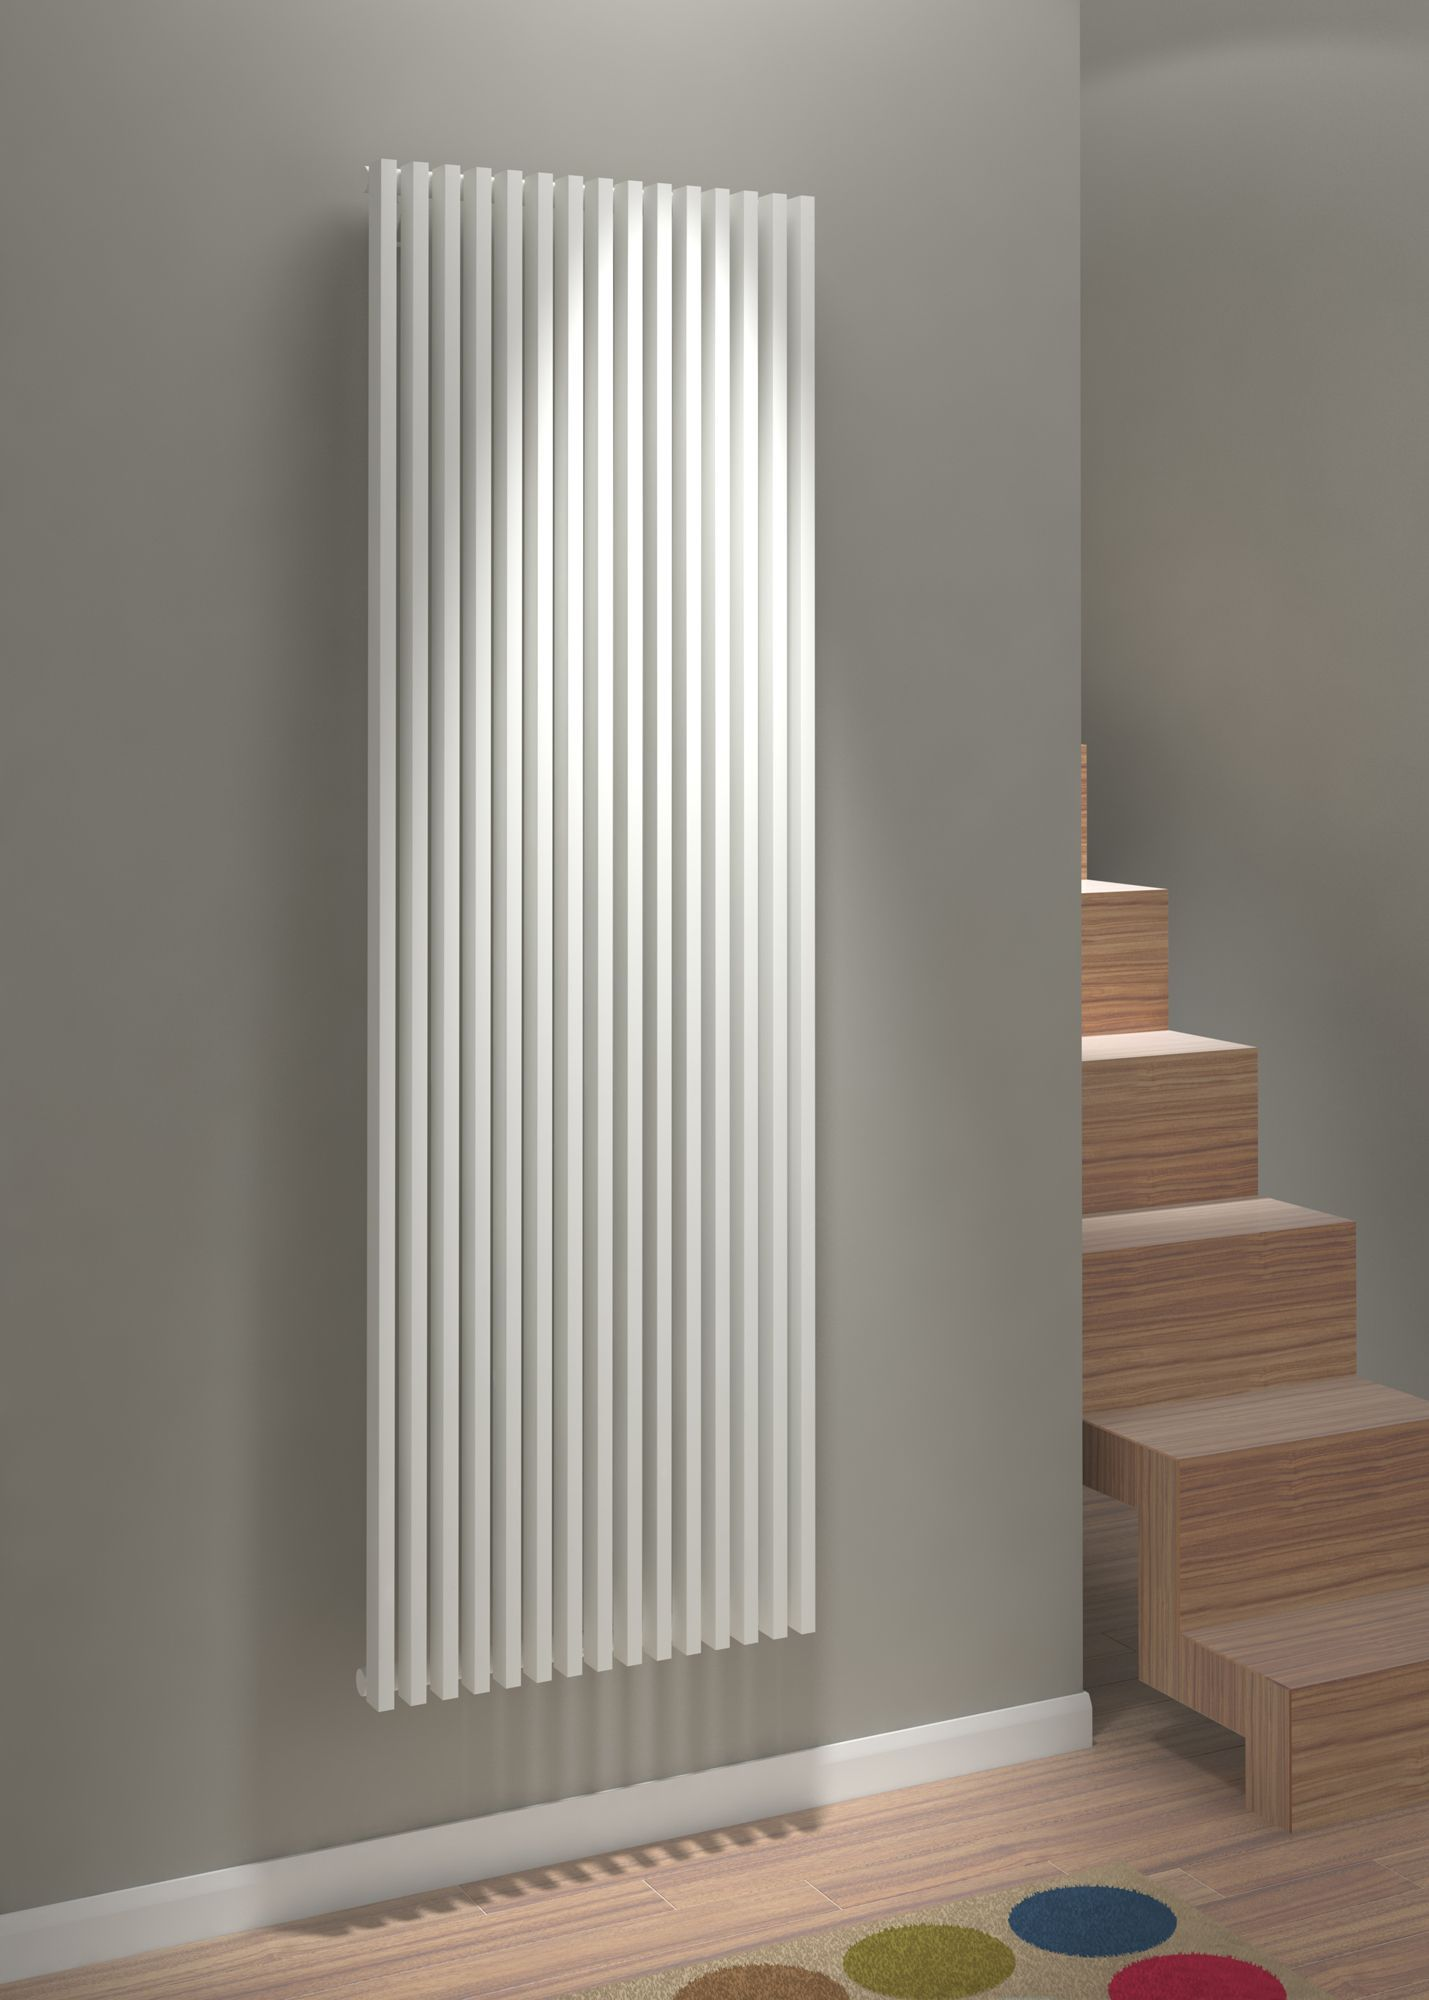 Kudox Xylo Vertical Radiator White (H)1800 mm (W)580